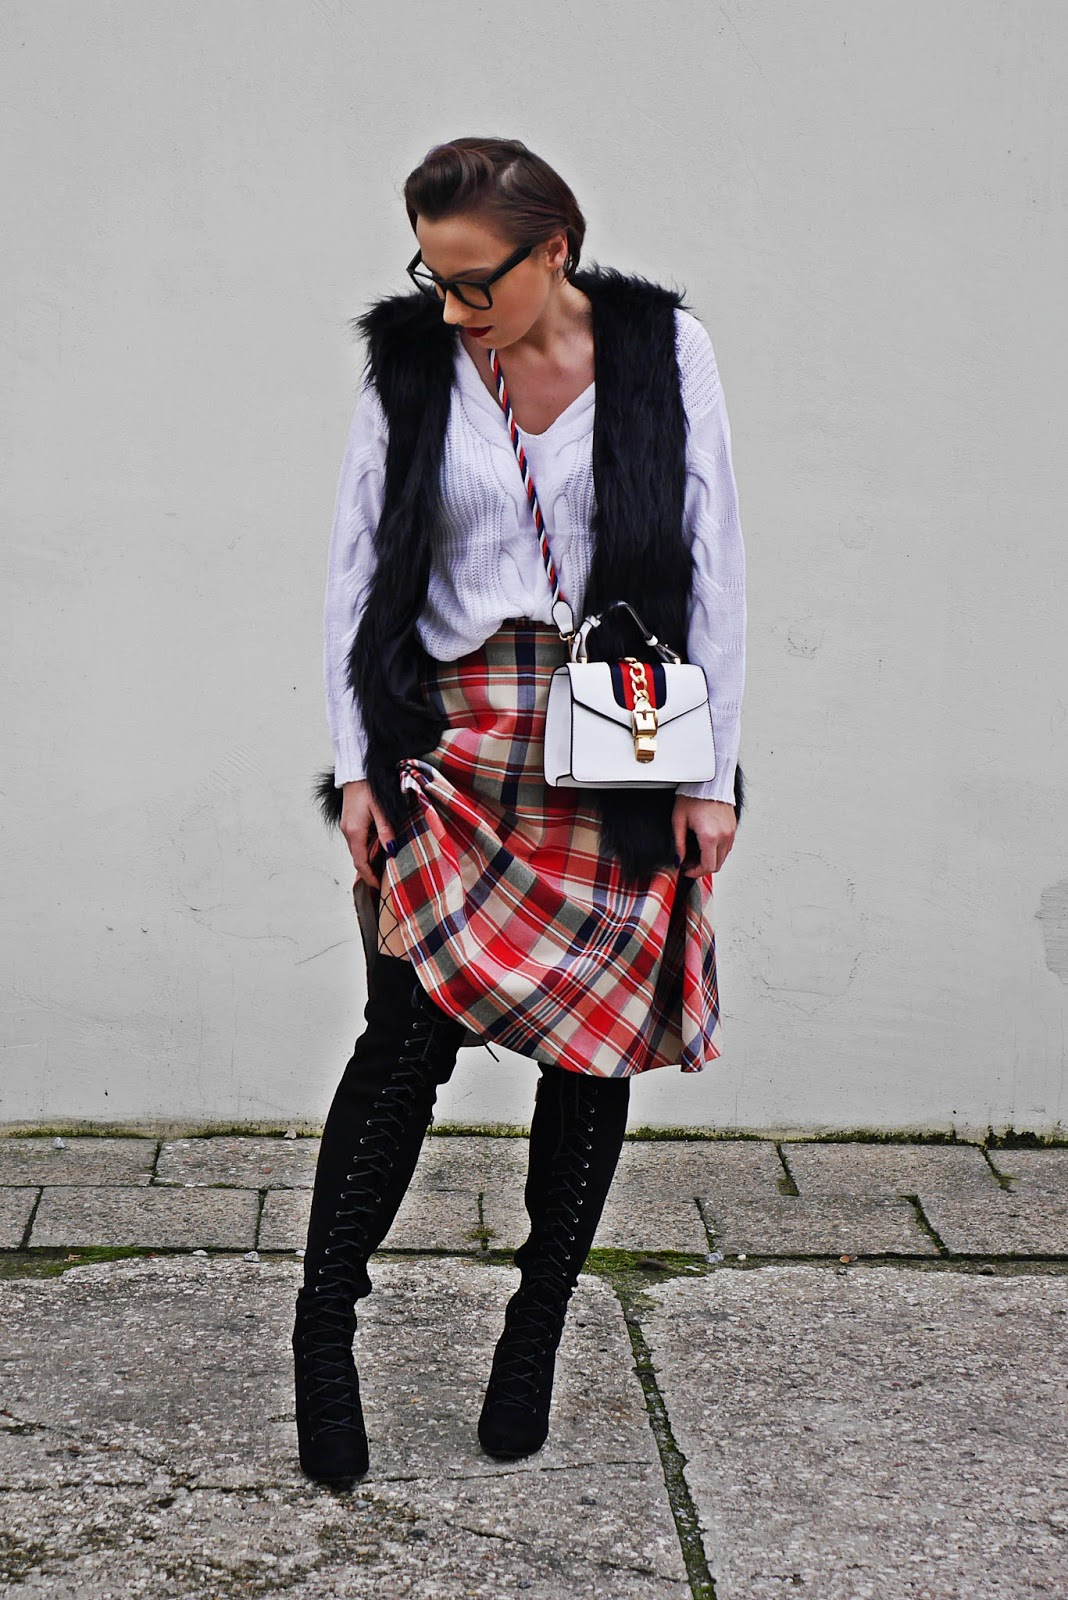 5_plaid_skirt_fur_waist_white_sweater_high_kenee_shoes_karyn_blog_modowy_151117a